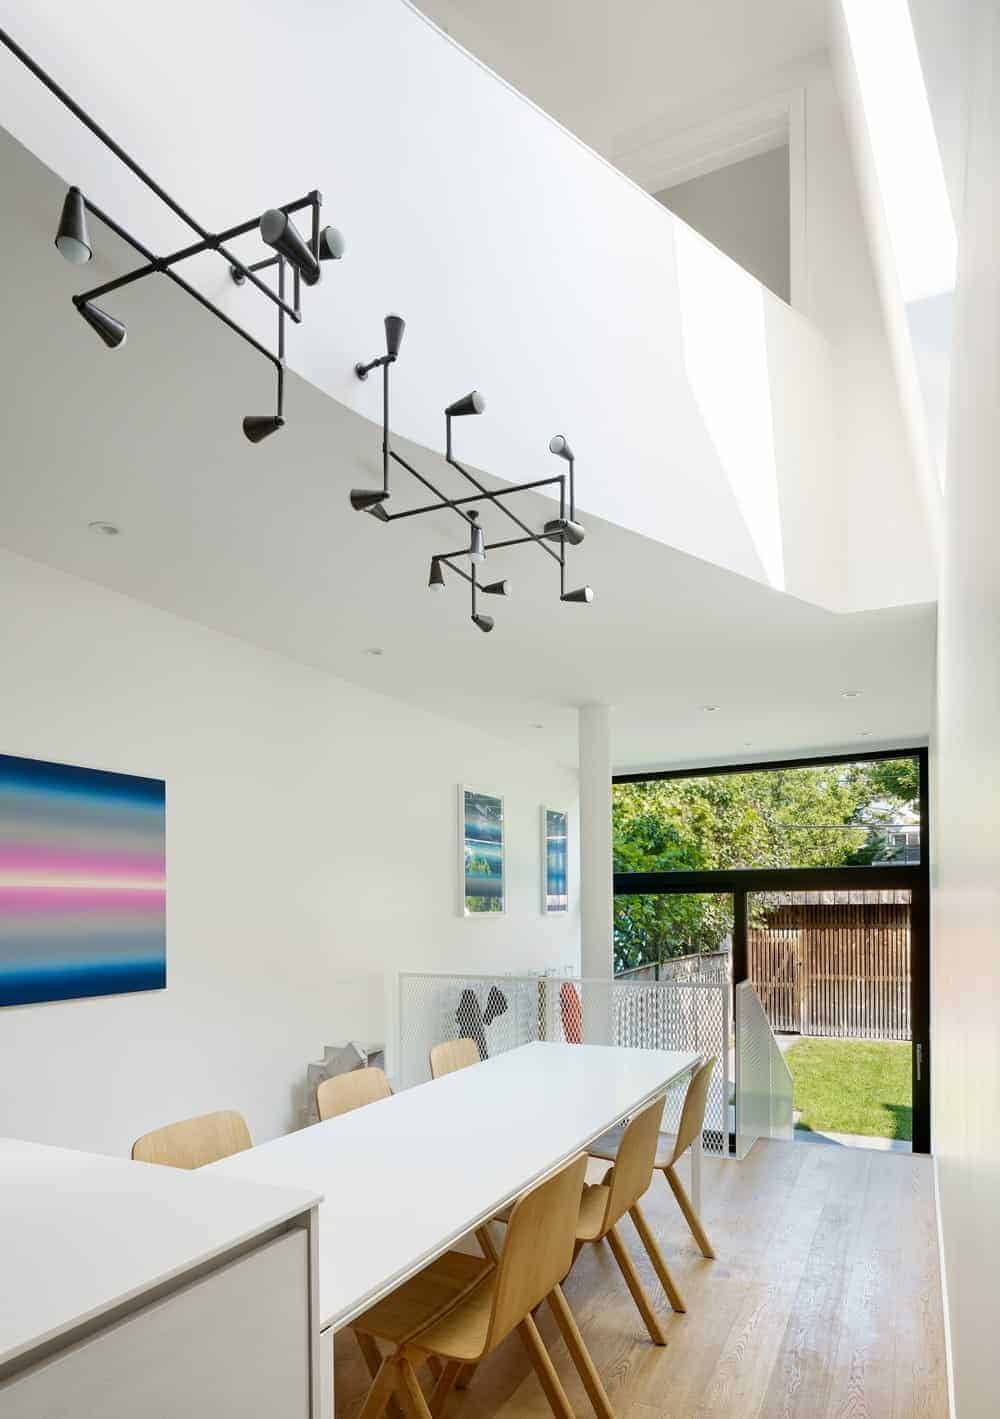 This informal dining area is in the middle of the kitchen and the staircase that has a white metal mesh railing that matches with the white table that is paired with wooden chairs and topped with an industrial style chandelier above it.